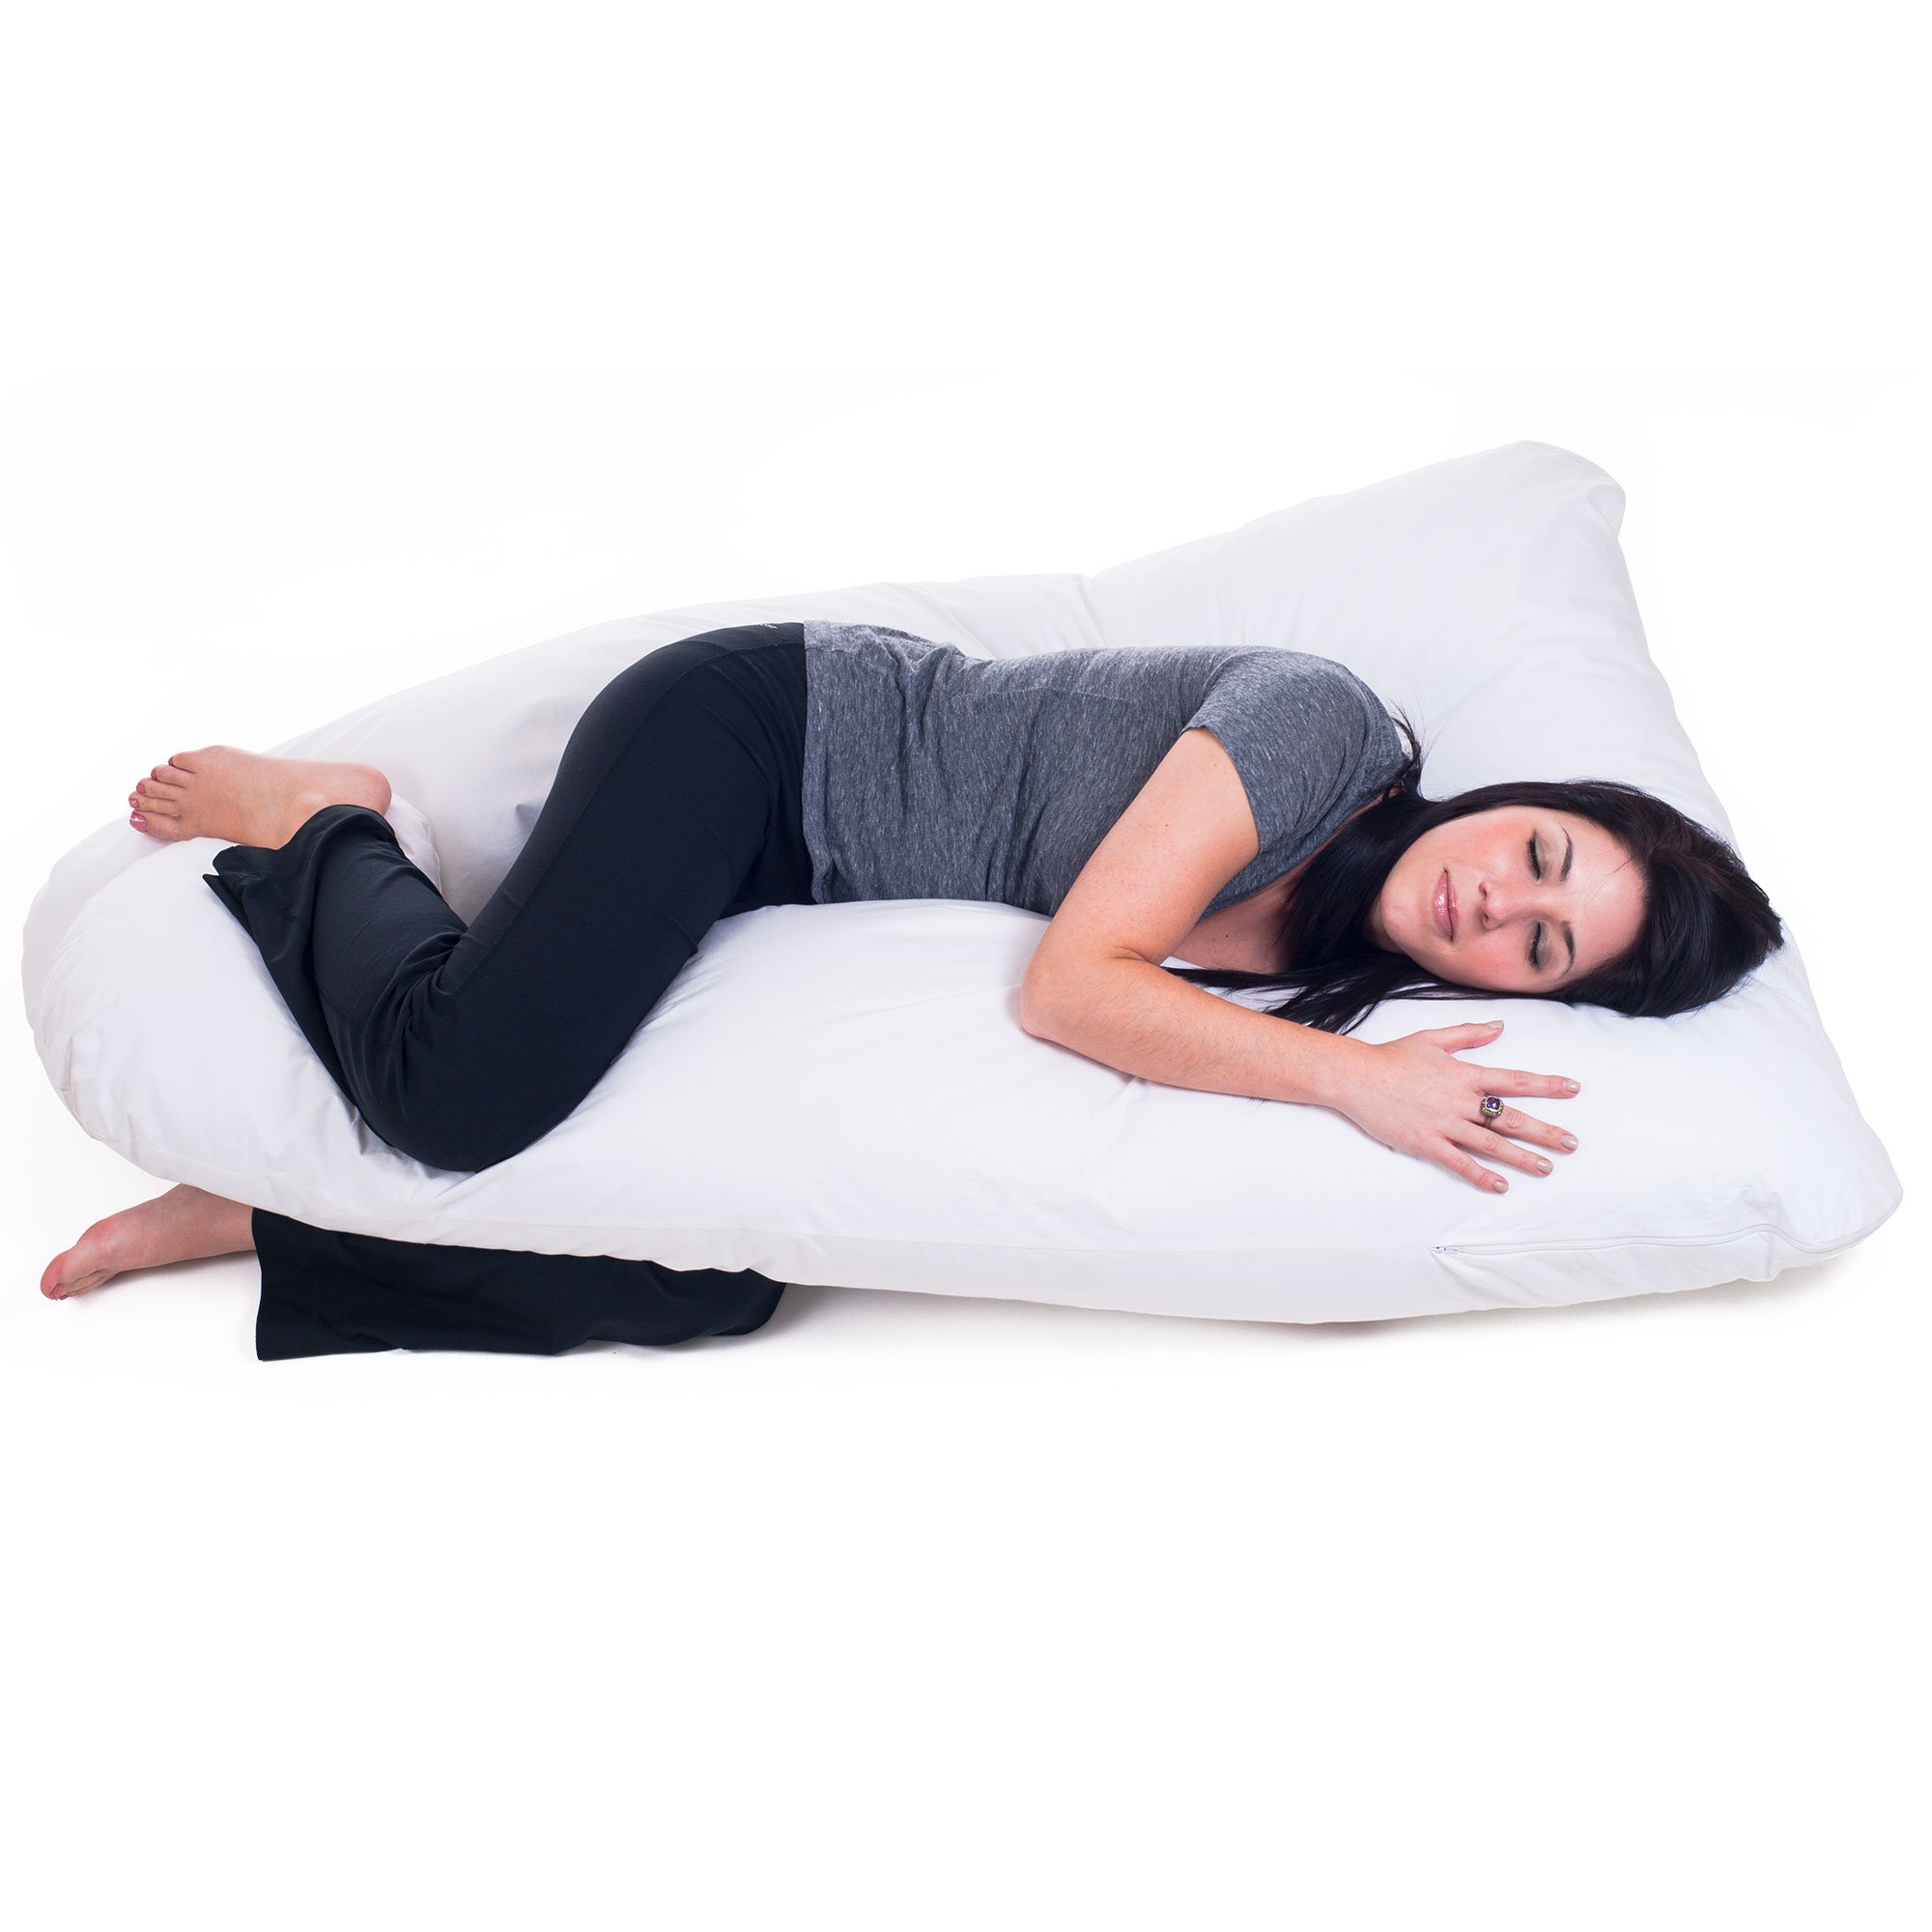 Bluestone Full Body Contour U Pillow - Great for Pregnancy